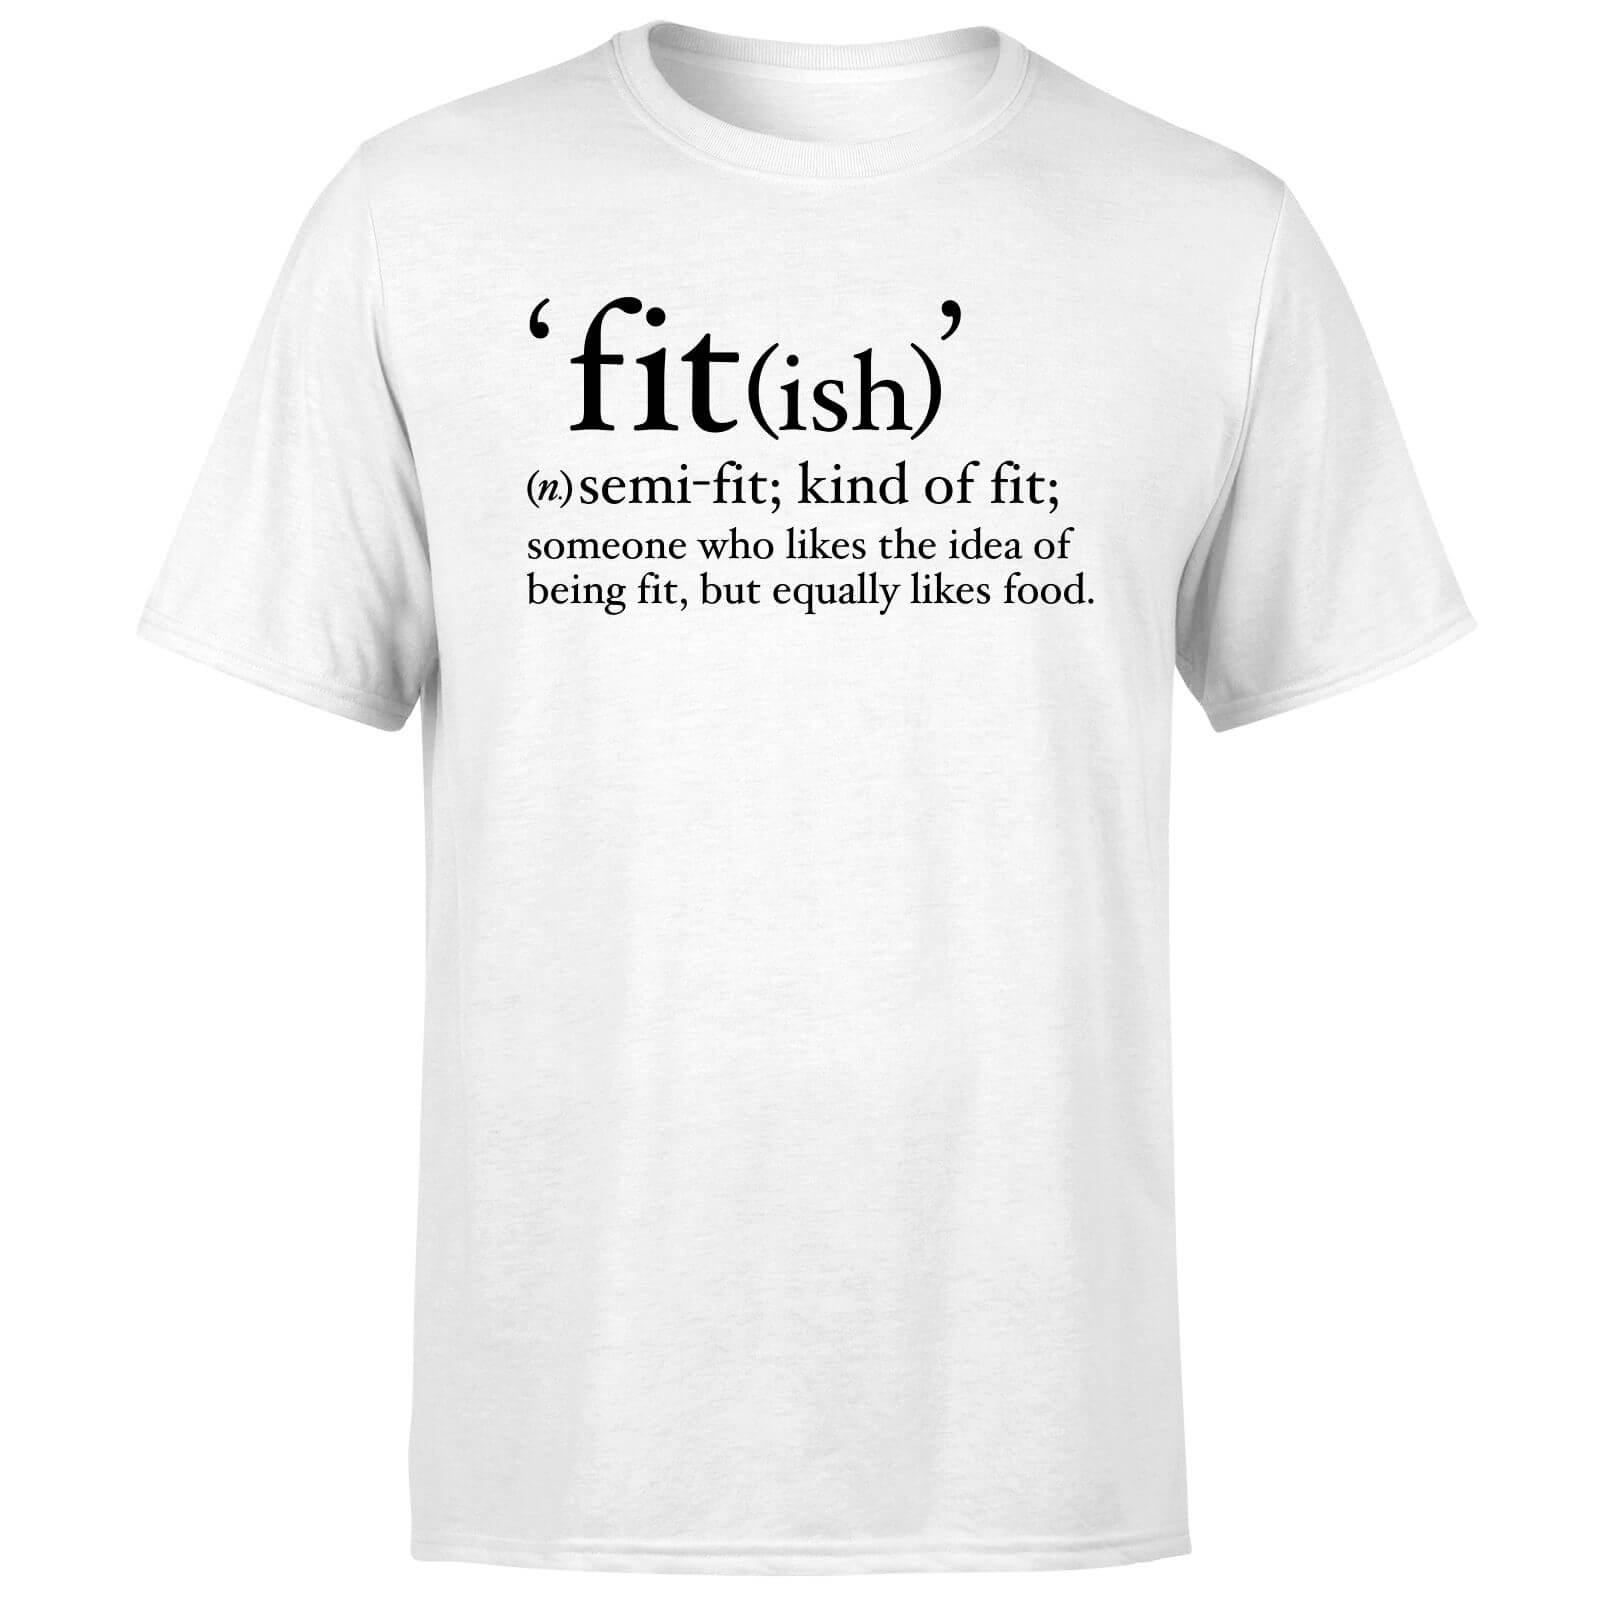 Fit (ish) T-Shirt - White